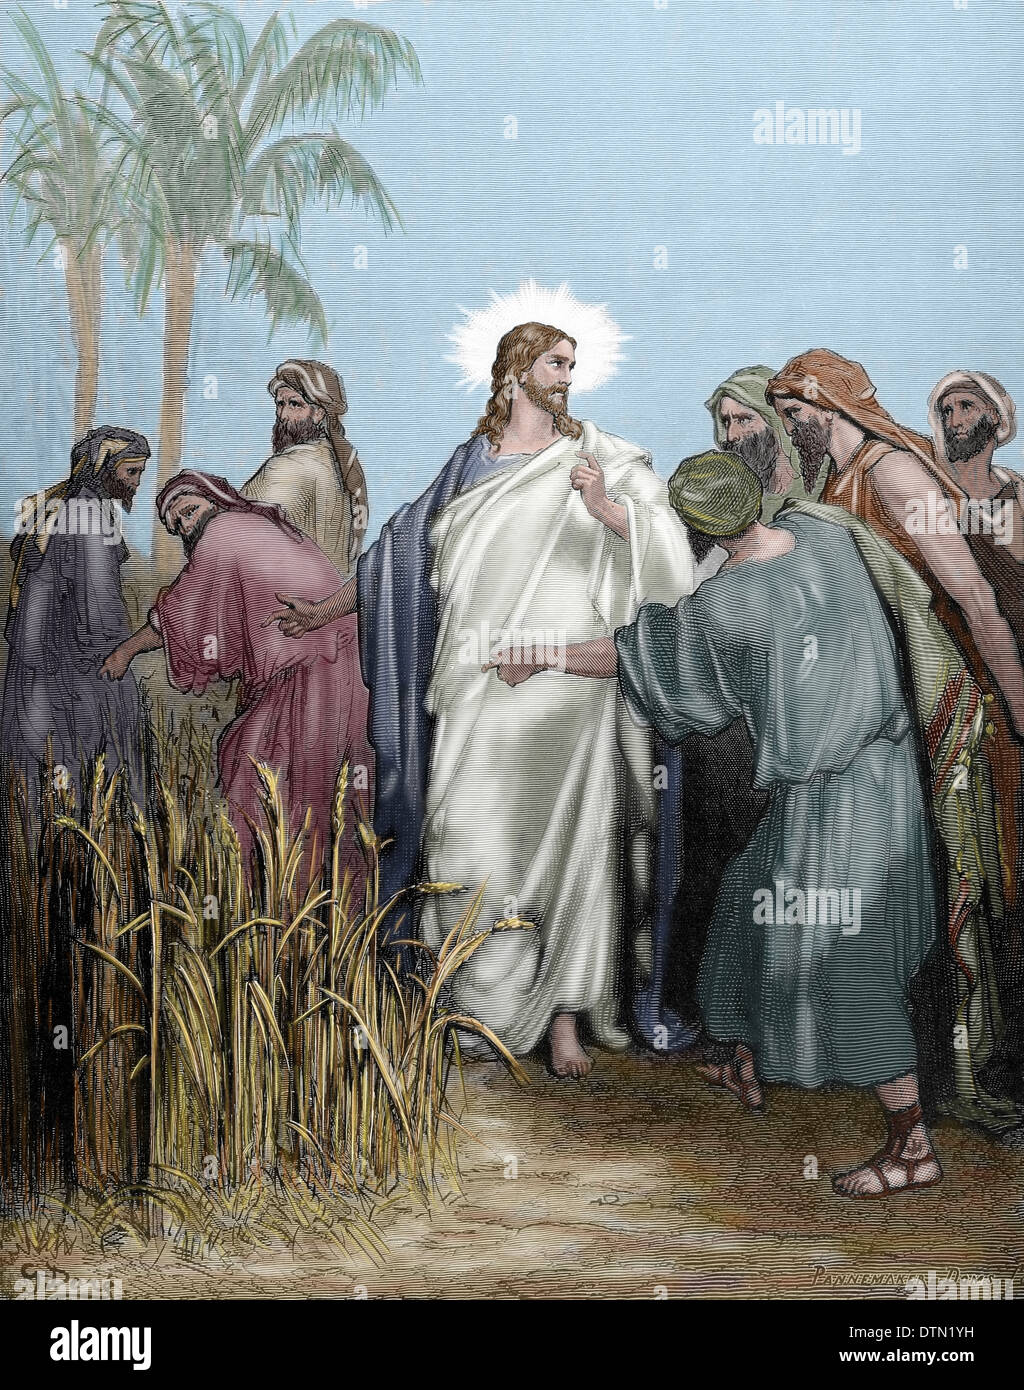 New Testament. Gospel of Matthew. Chapter XII. The apostles gathered ears in the day of rest. Colored engraving. - Stock Image